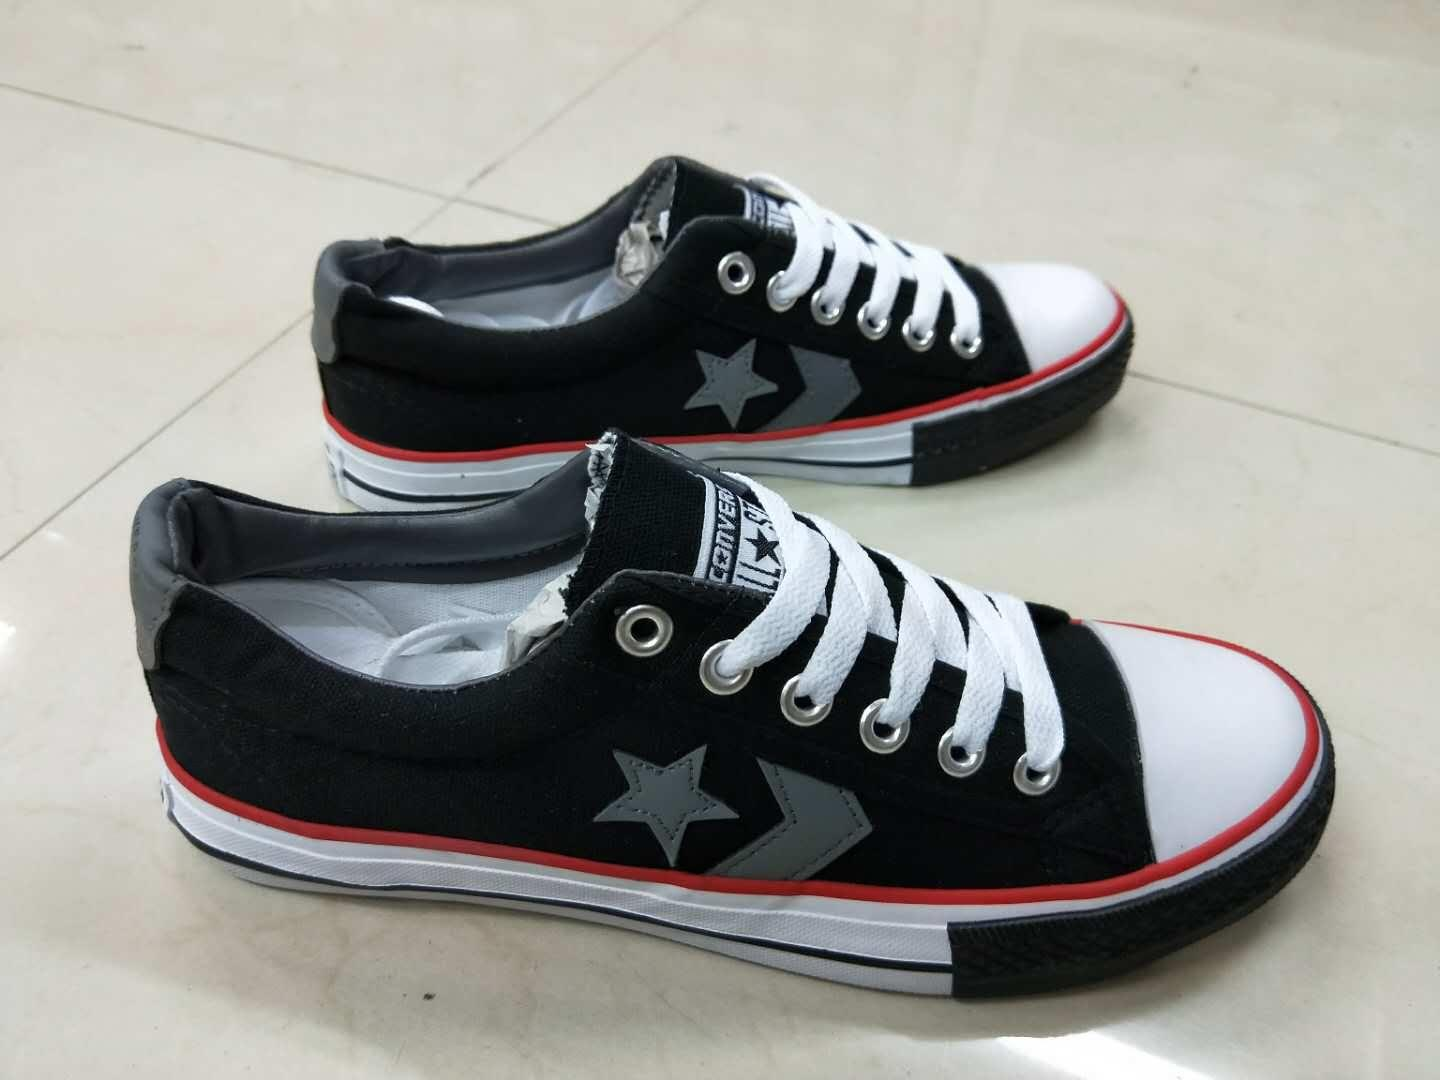 on sale d8fb3 f3d17 CONVERSE all star SHOES for mens  888